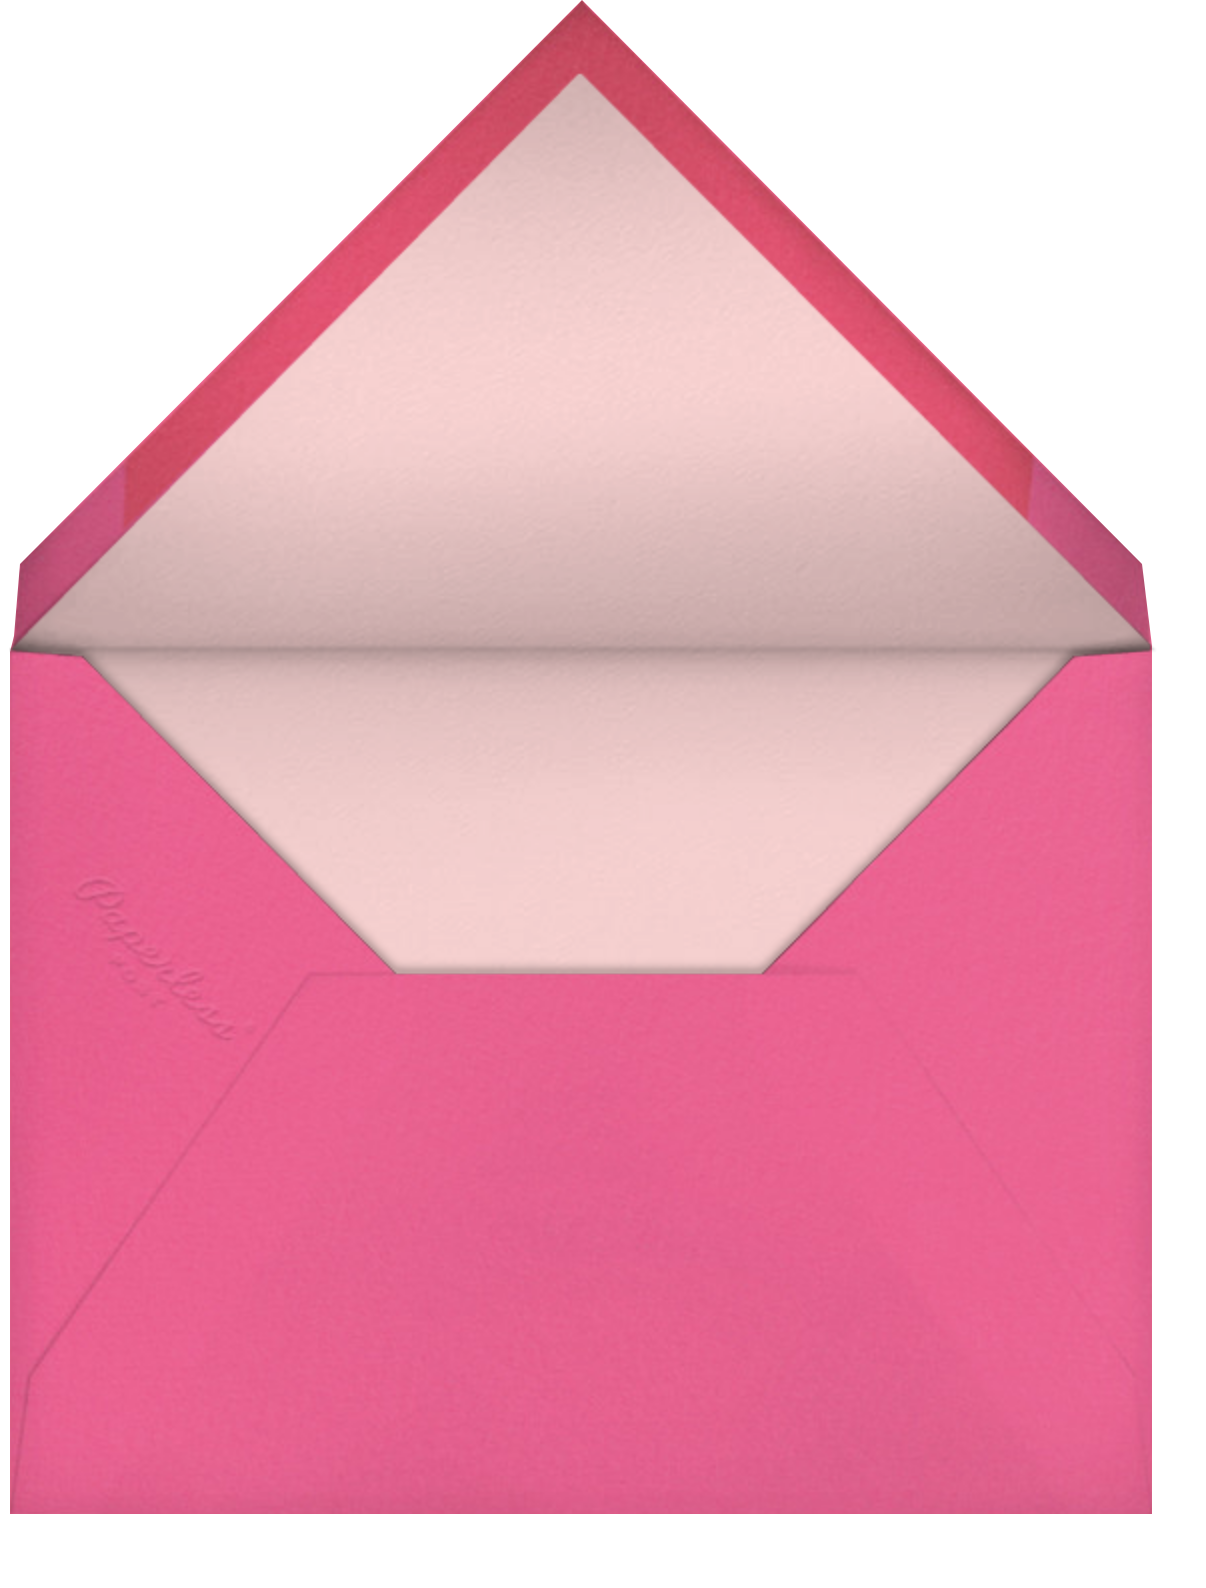 Shrimply the Best - Hello!Lucky - Valentine's Day - envelope back